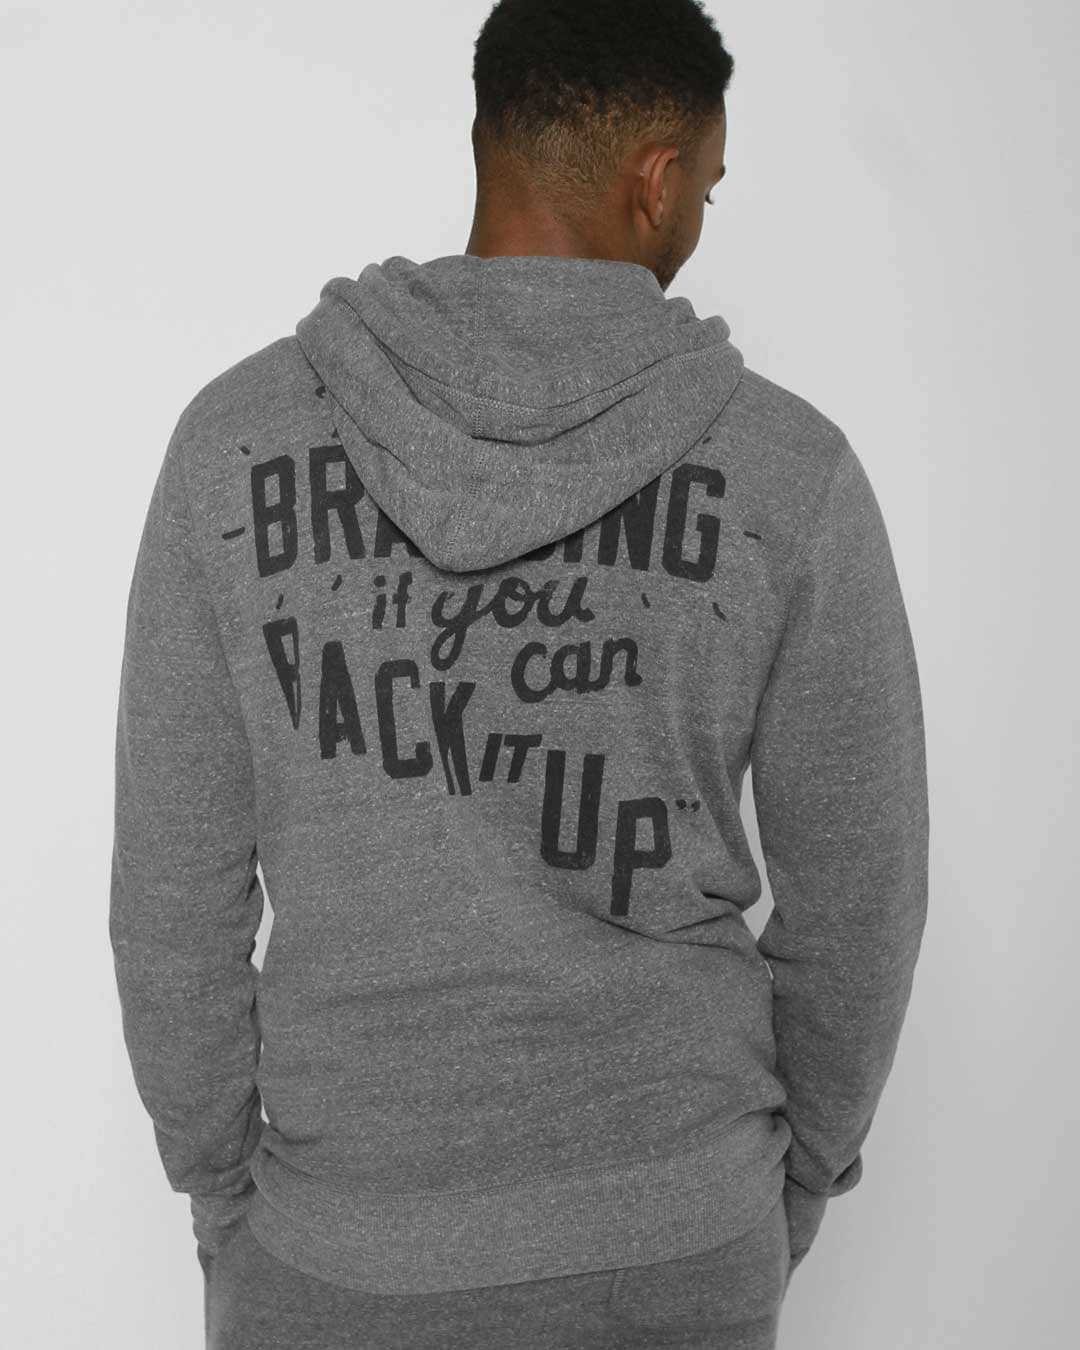 Ali Brag Quote FZ Hoody - Roots of Inc dba Roots of Fight